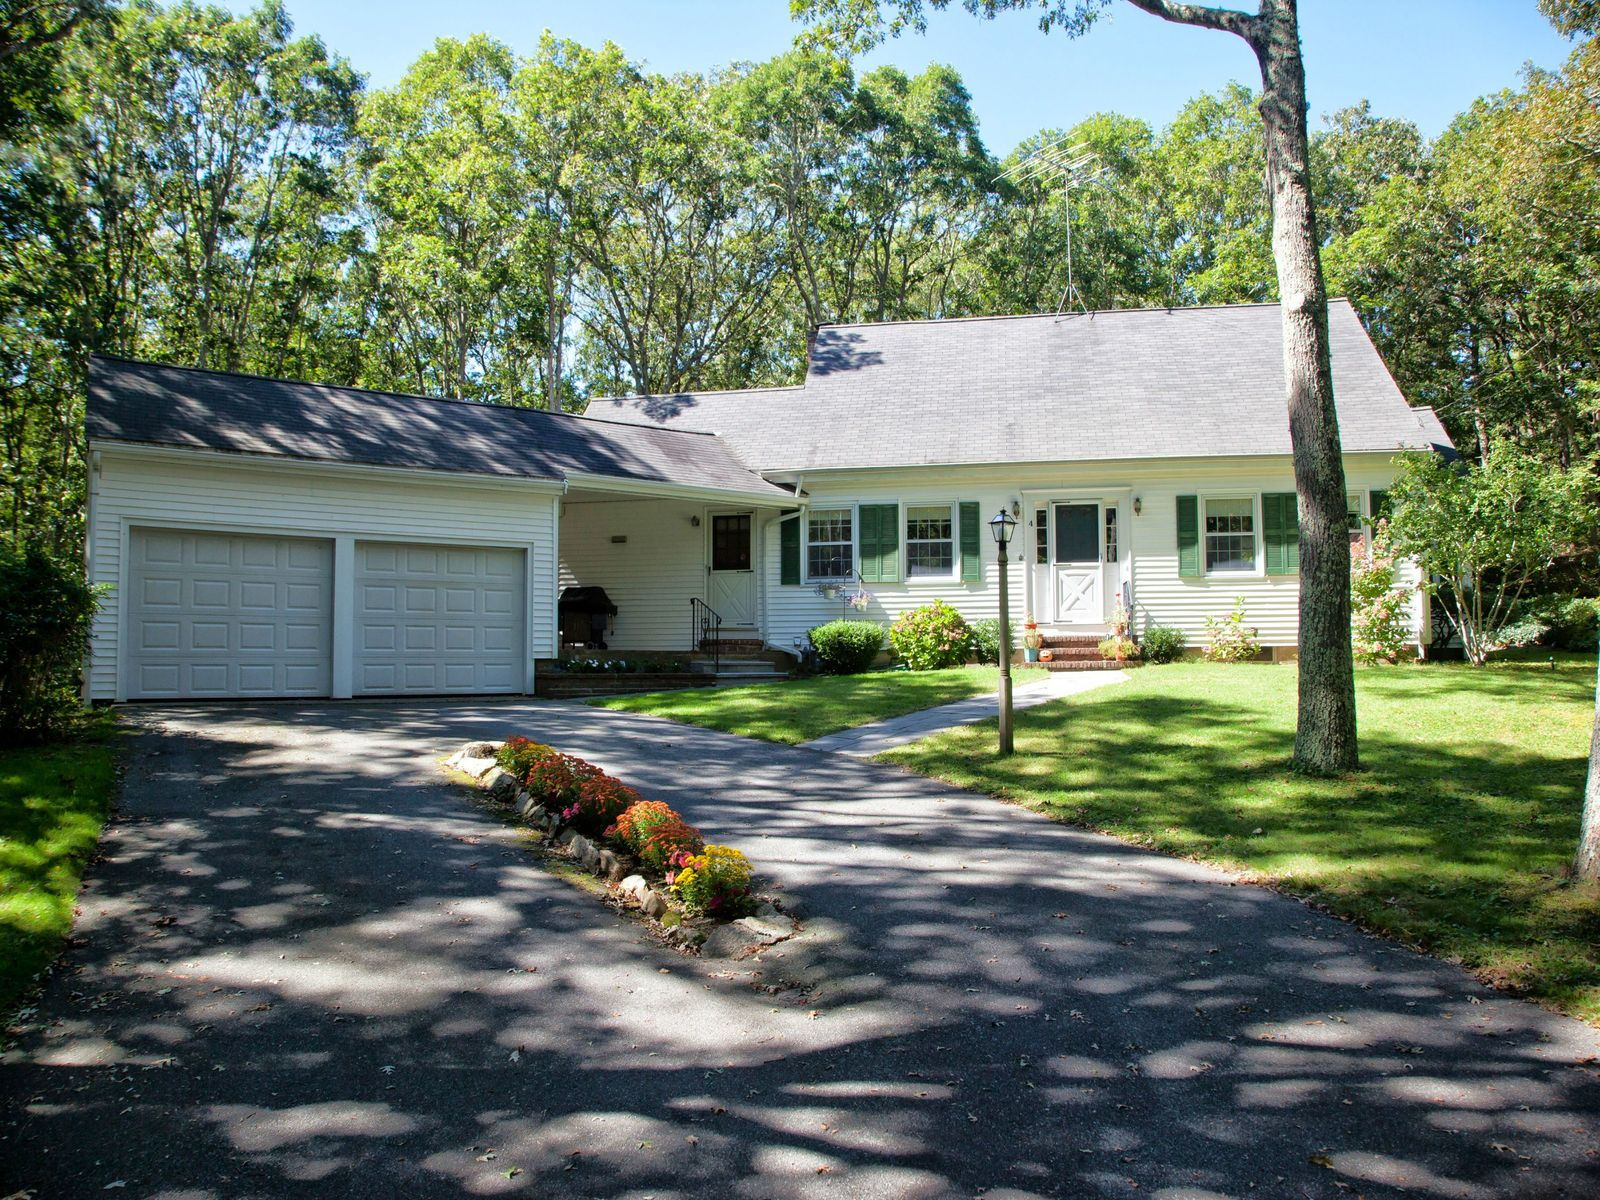 Cape Full of Personality in Bourne, Bourne MA Single Family Home - Cape Cod Real Estate